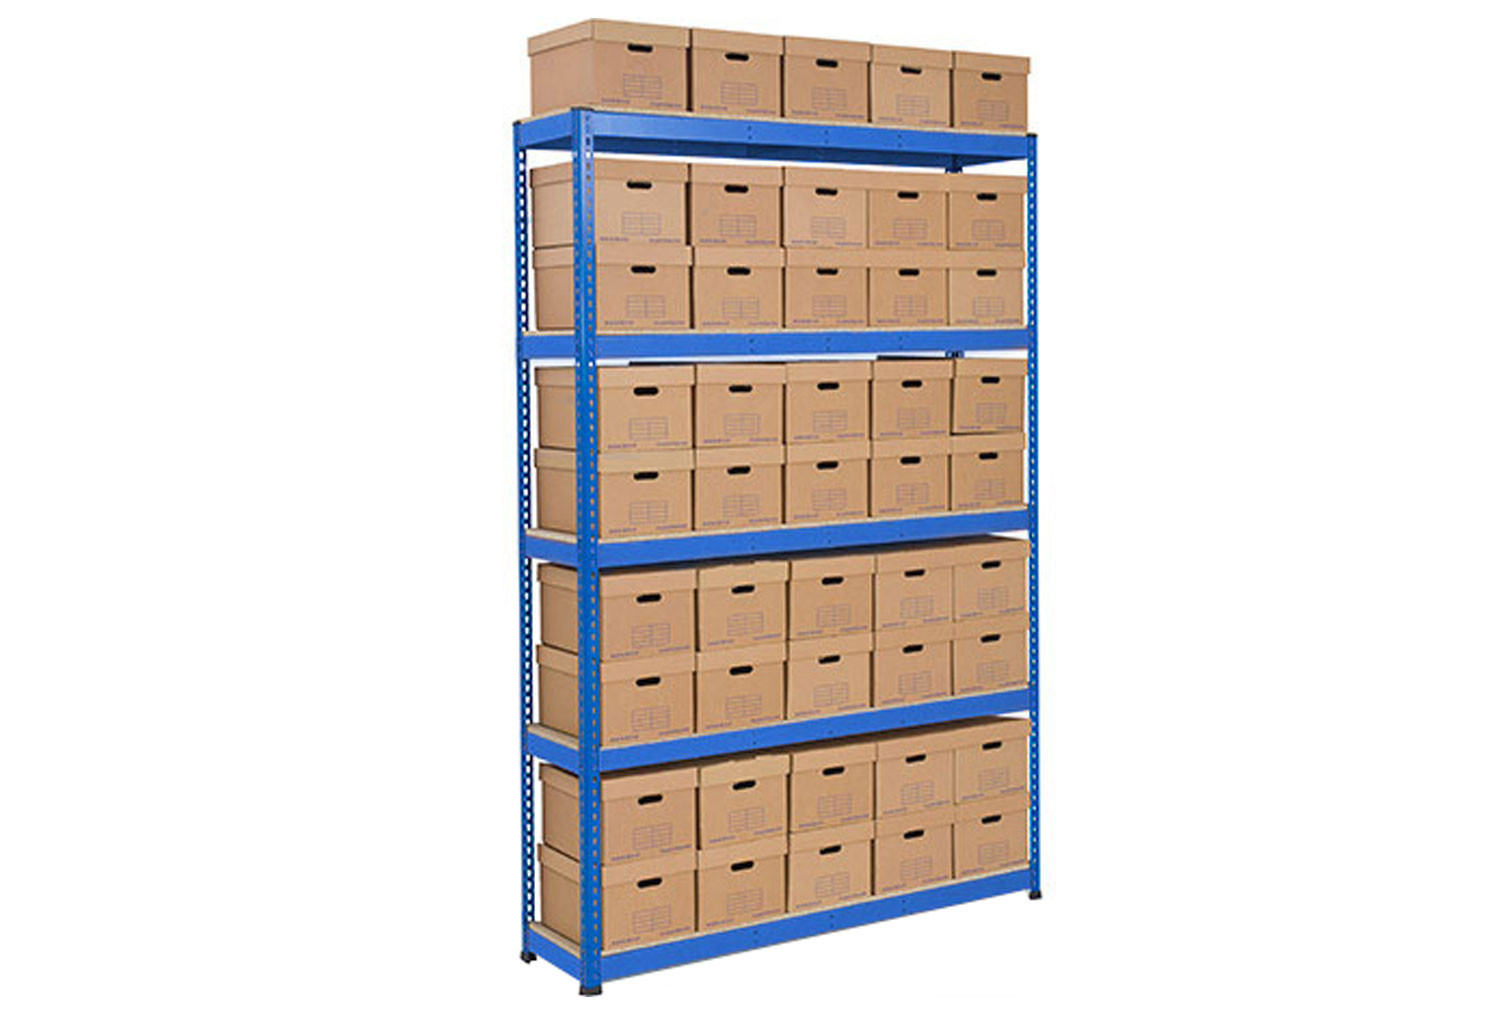 Rapid 1 single sided archive storage unit with 45 boxes